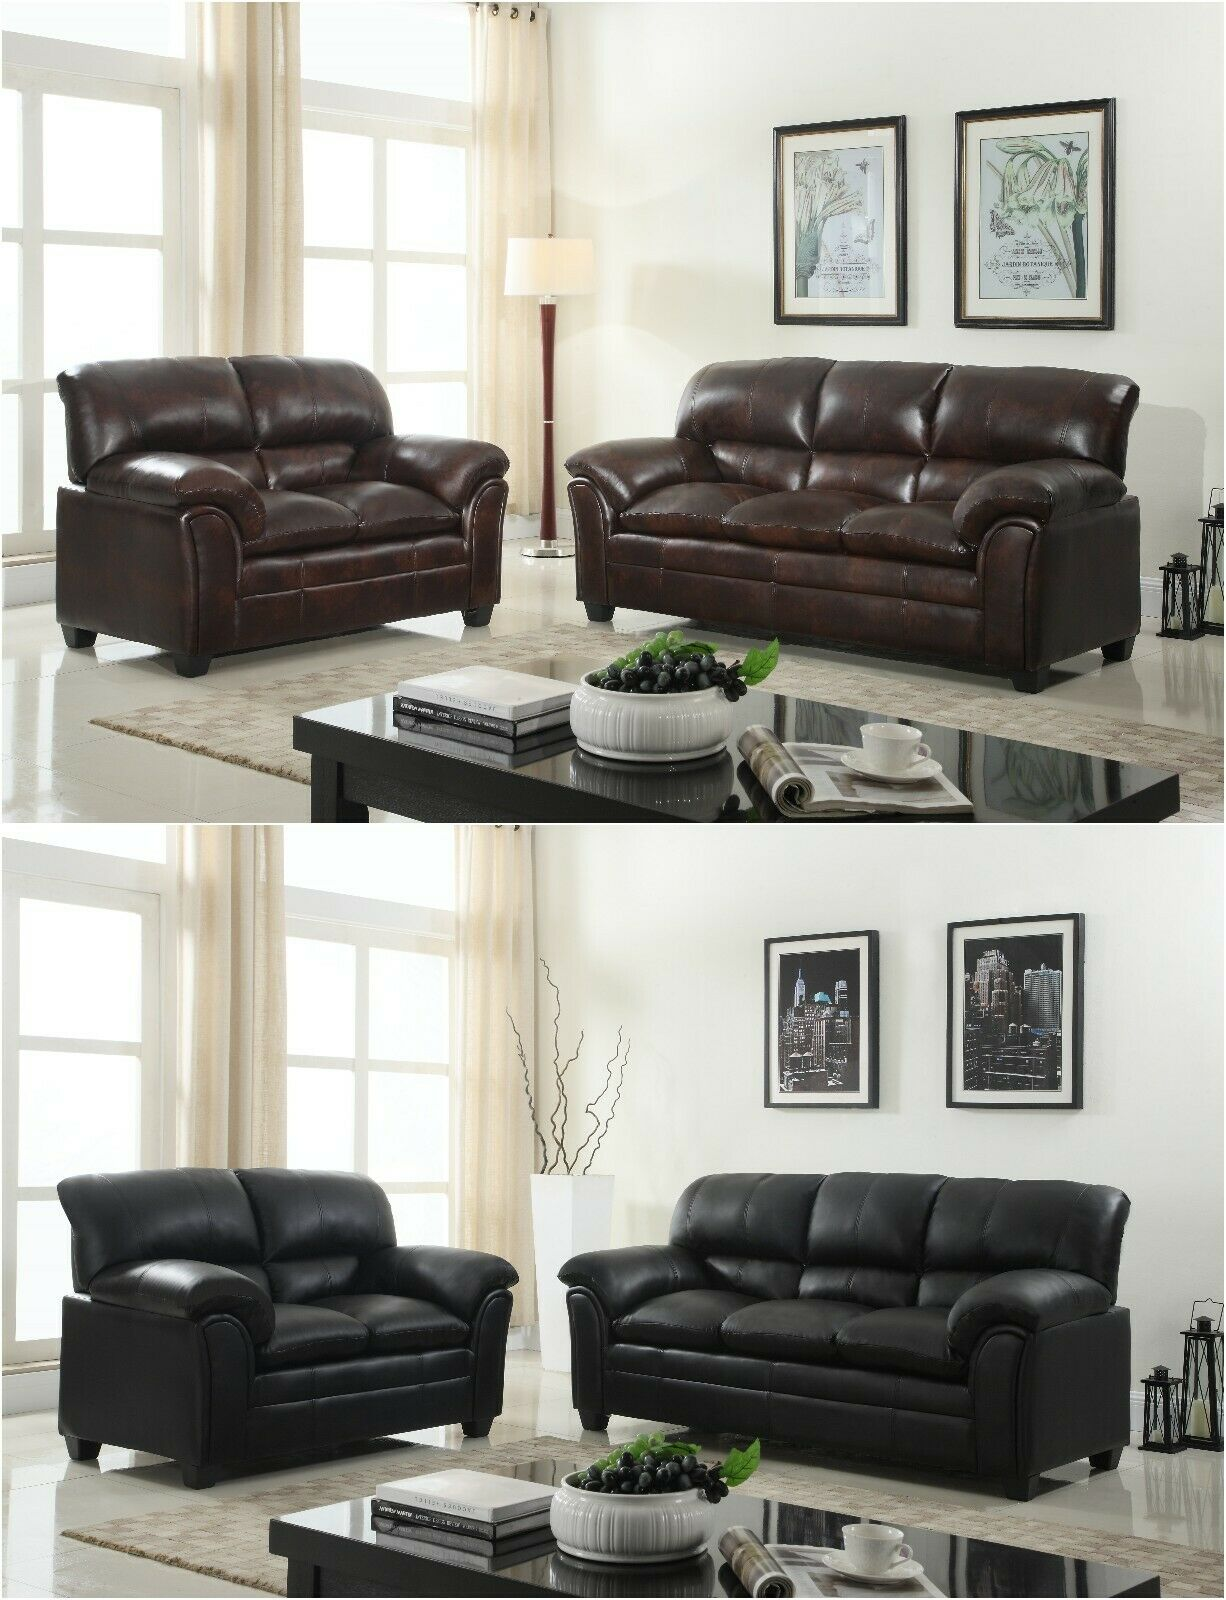 Black Tufted Leather Sofa Loveseat Or